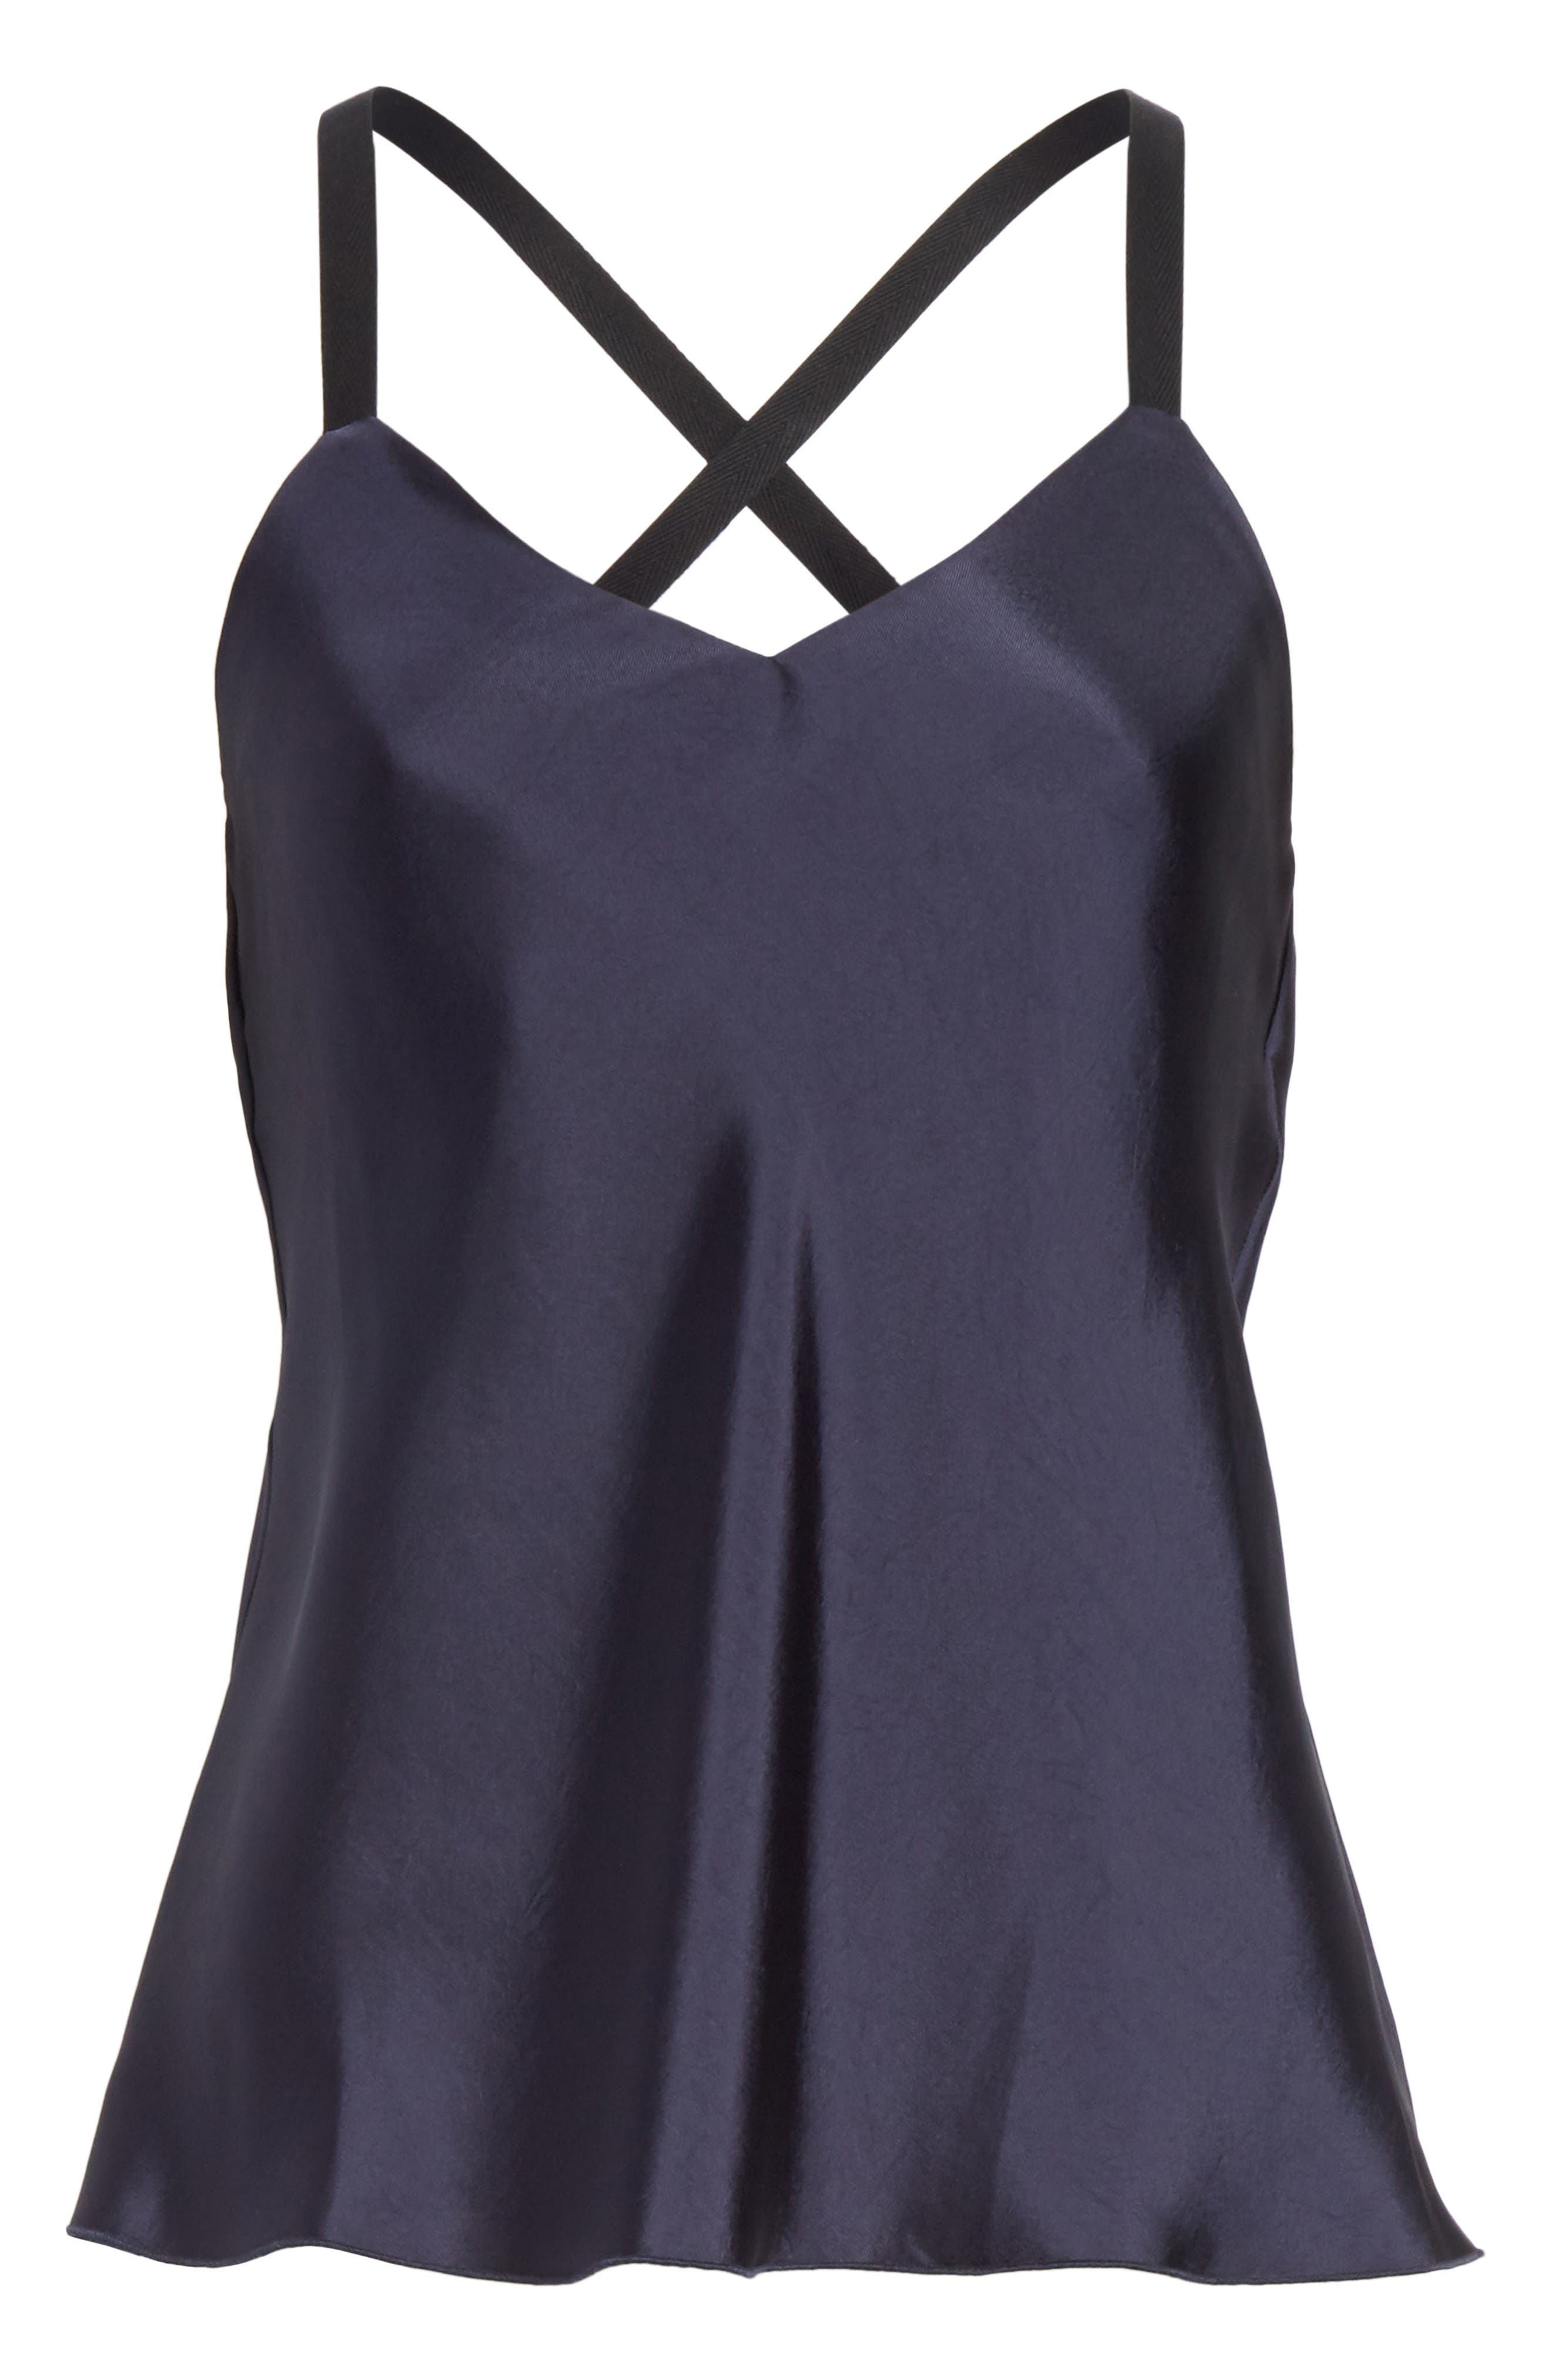 Mendini Strappy Back Silk Camisole,                             Alternate thumbnail 6, color,                             Navy